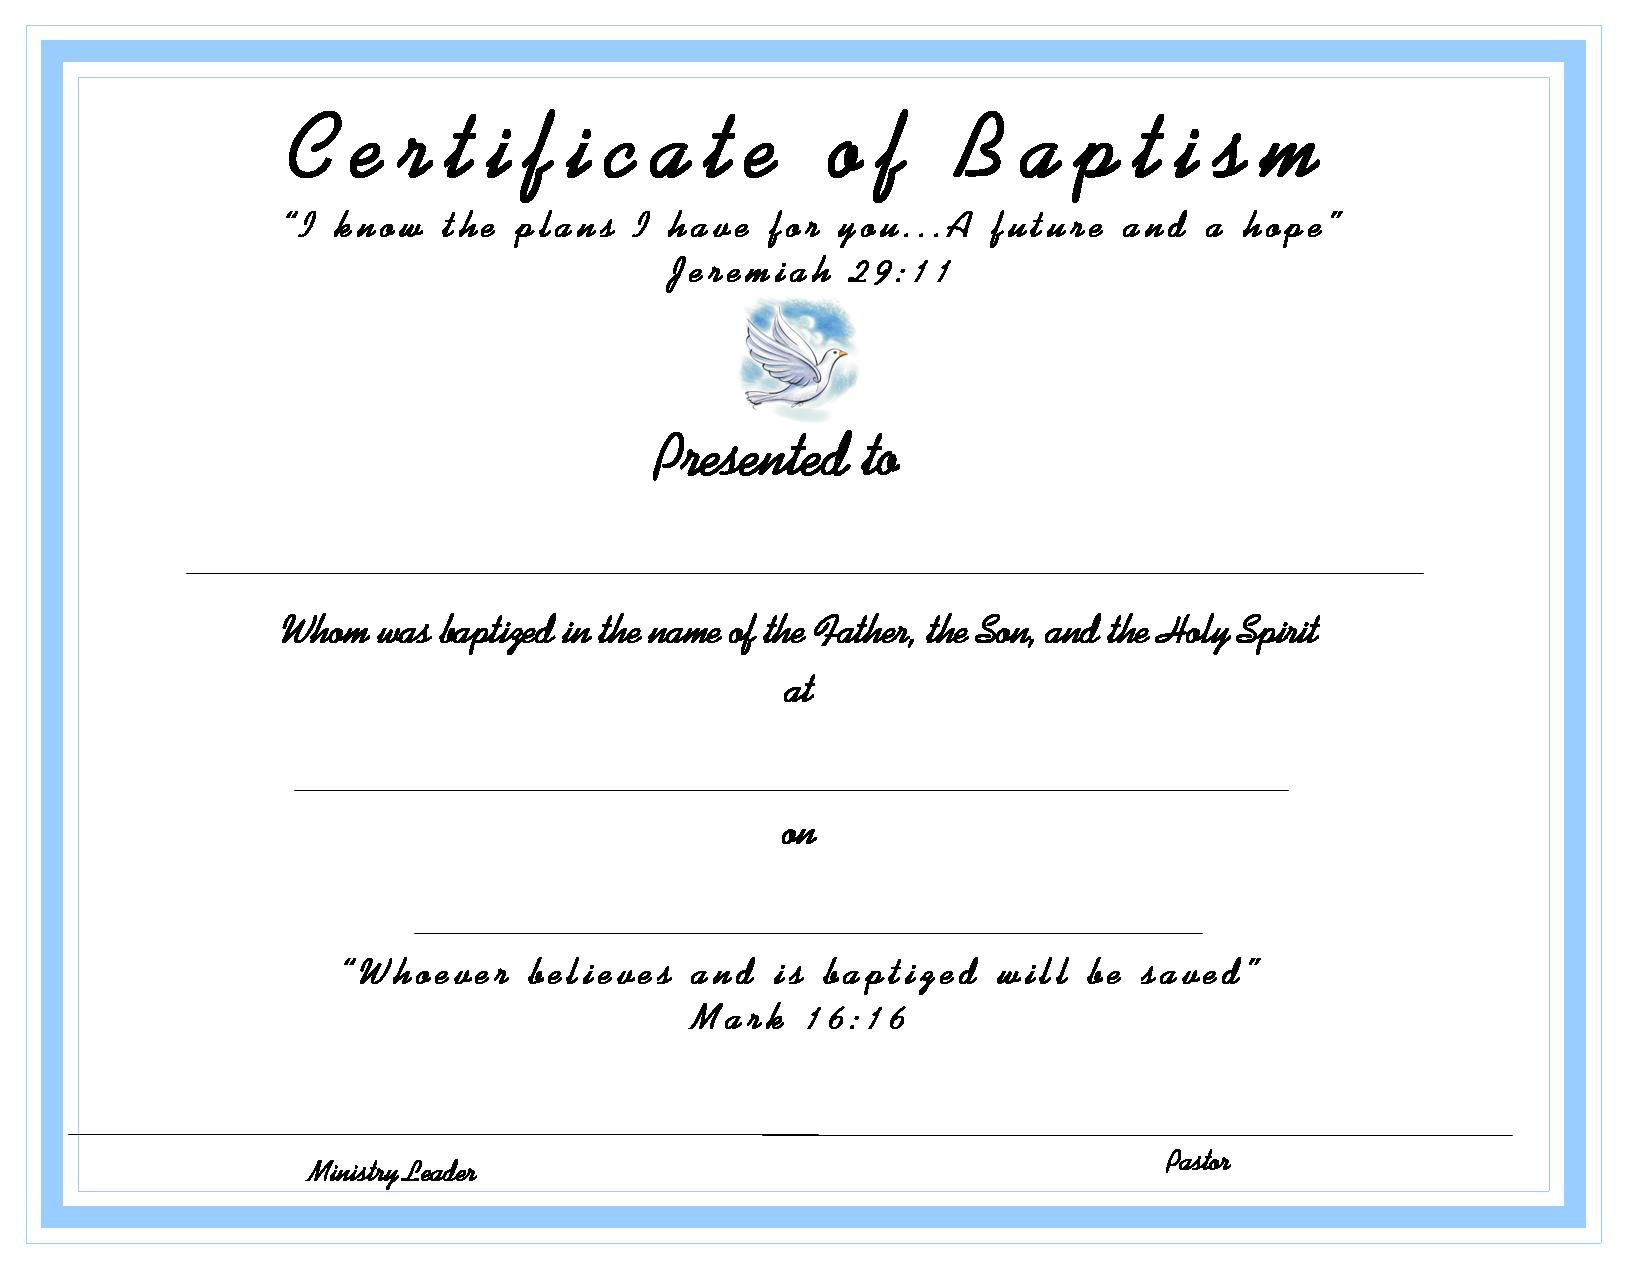 Certificatetemplate baptism certificate for your kids certificatetemplate baptism certificate for your kids ministry alramifo Choice Image